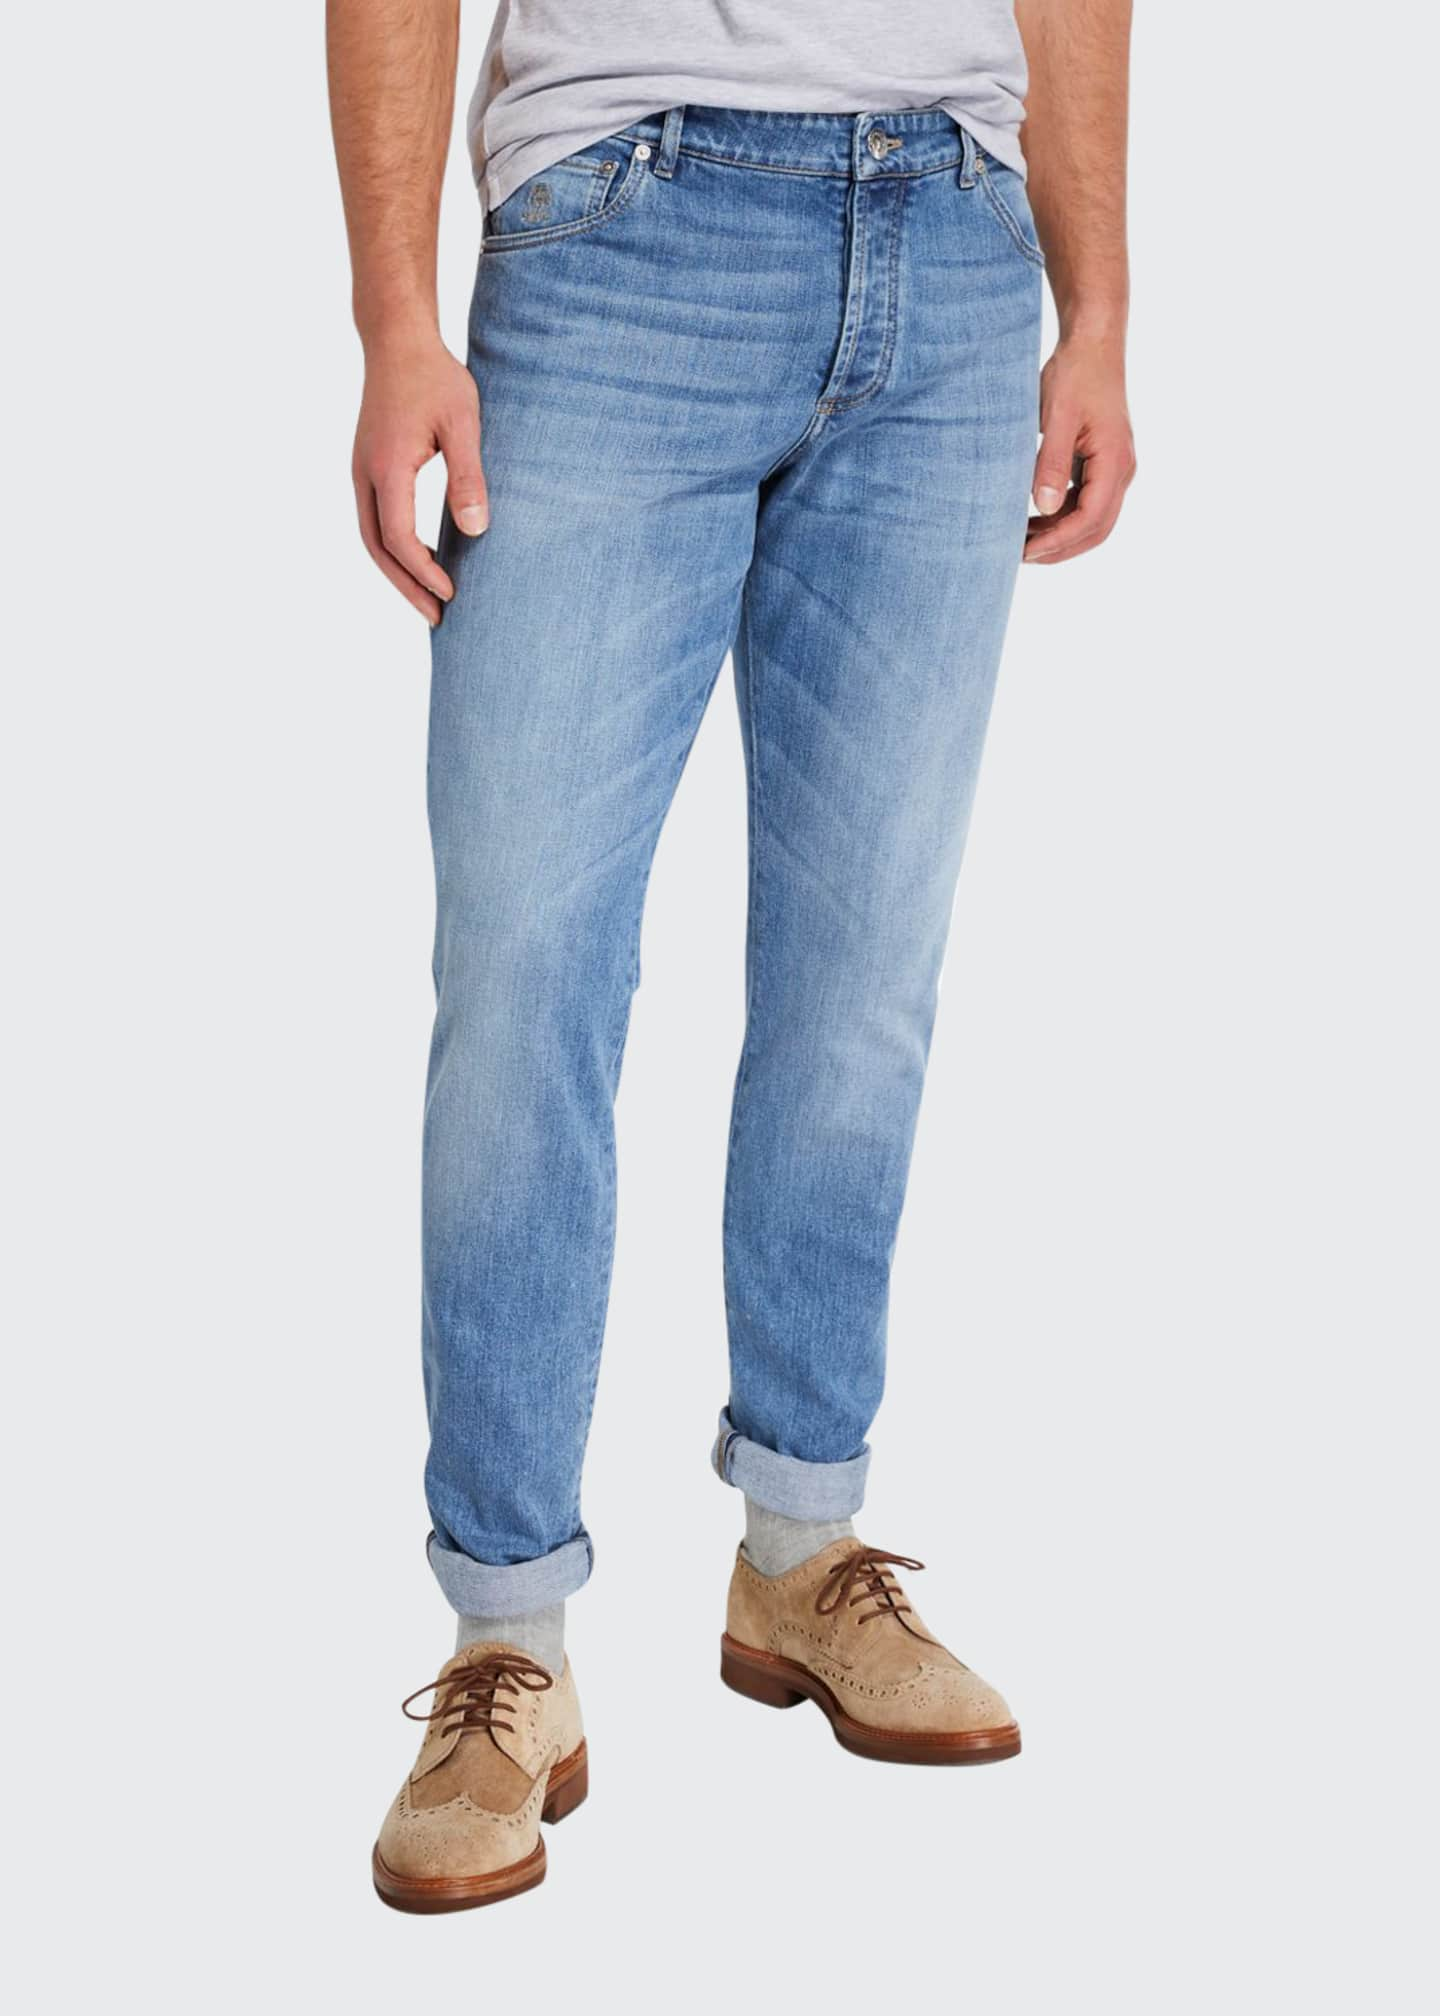 Brunello Cucinelli Men's Medium-Wash Slim-Fit Denim Jeans